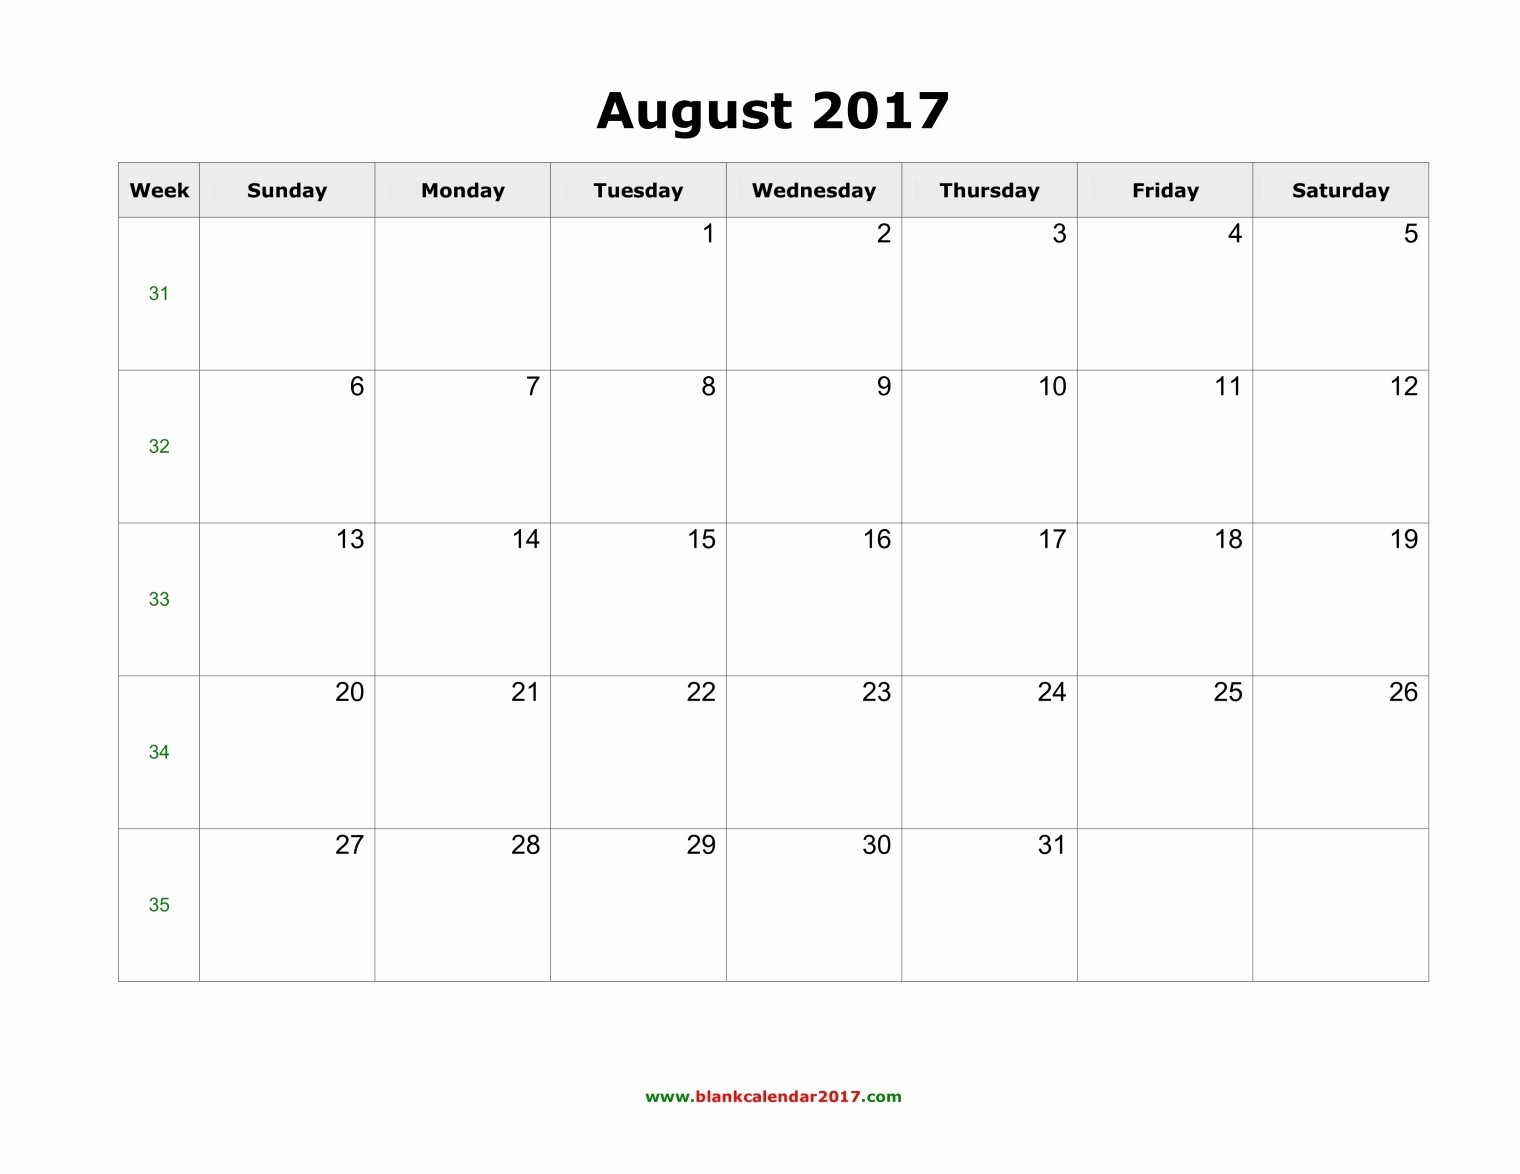 2017 Calendar with Holidays Template Awesome August 2017 Calendar with Holidays